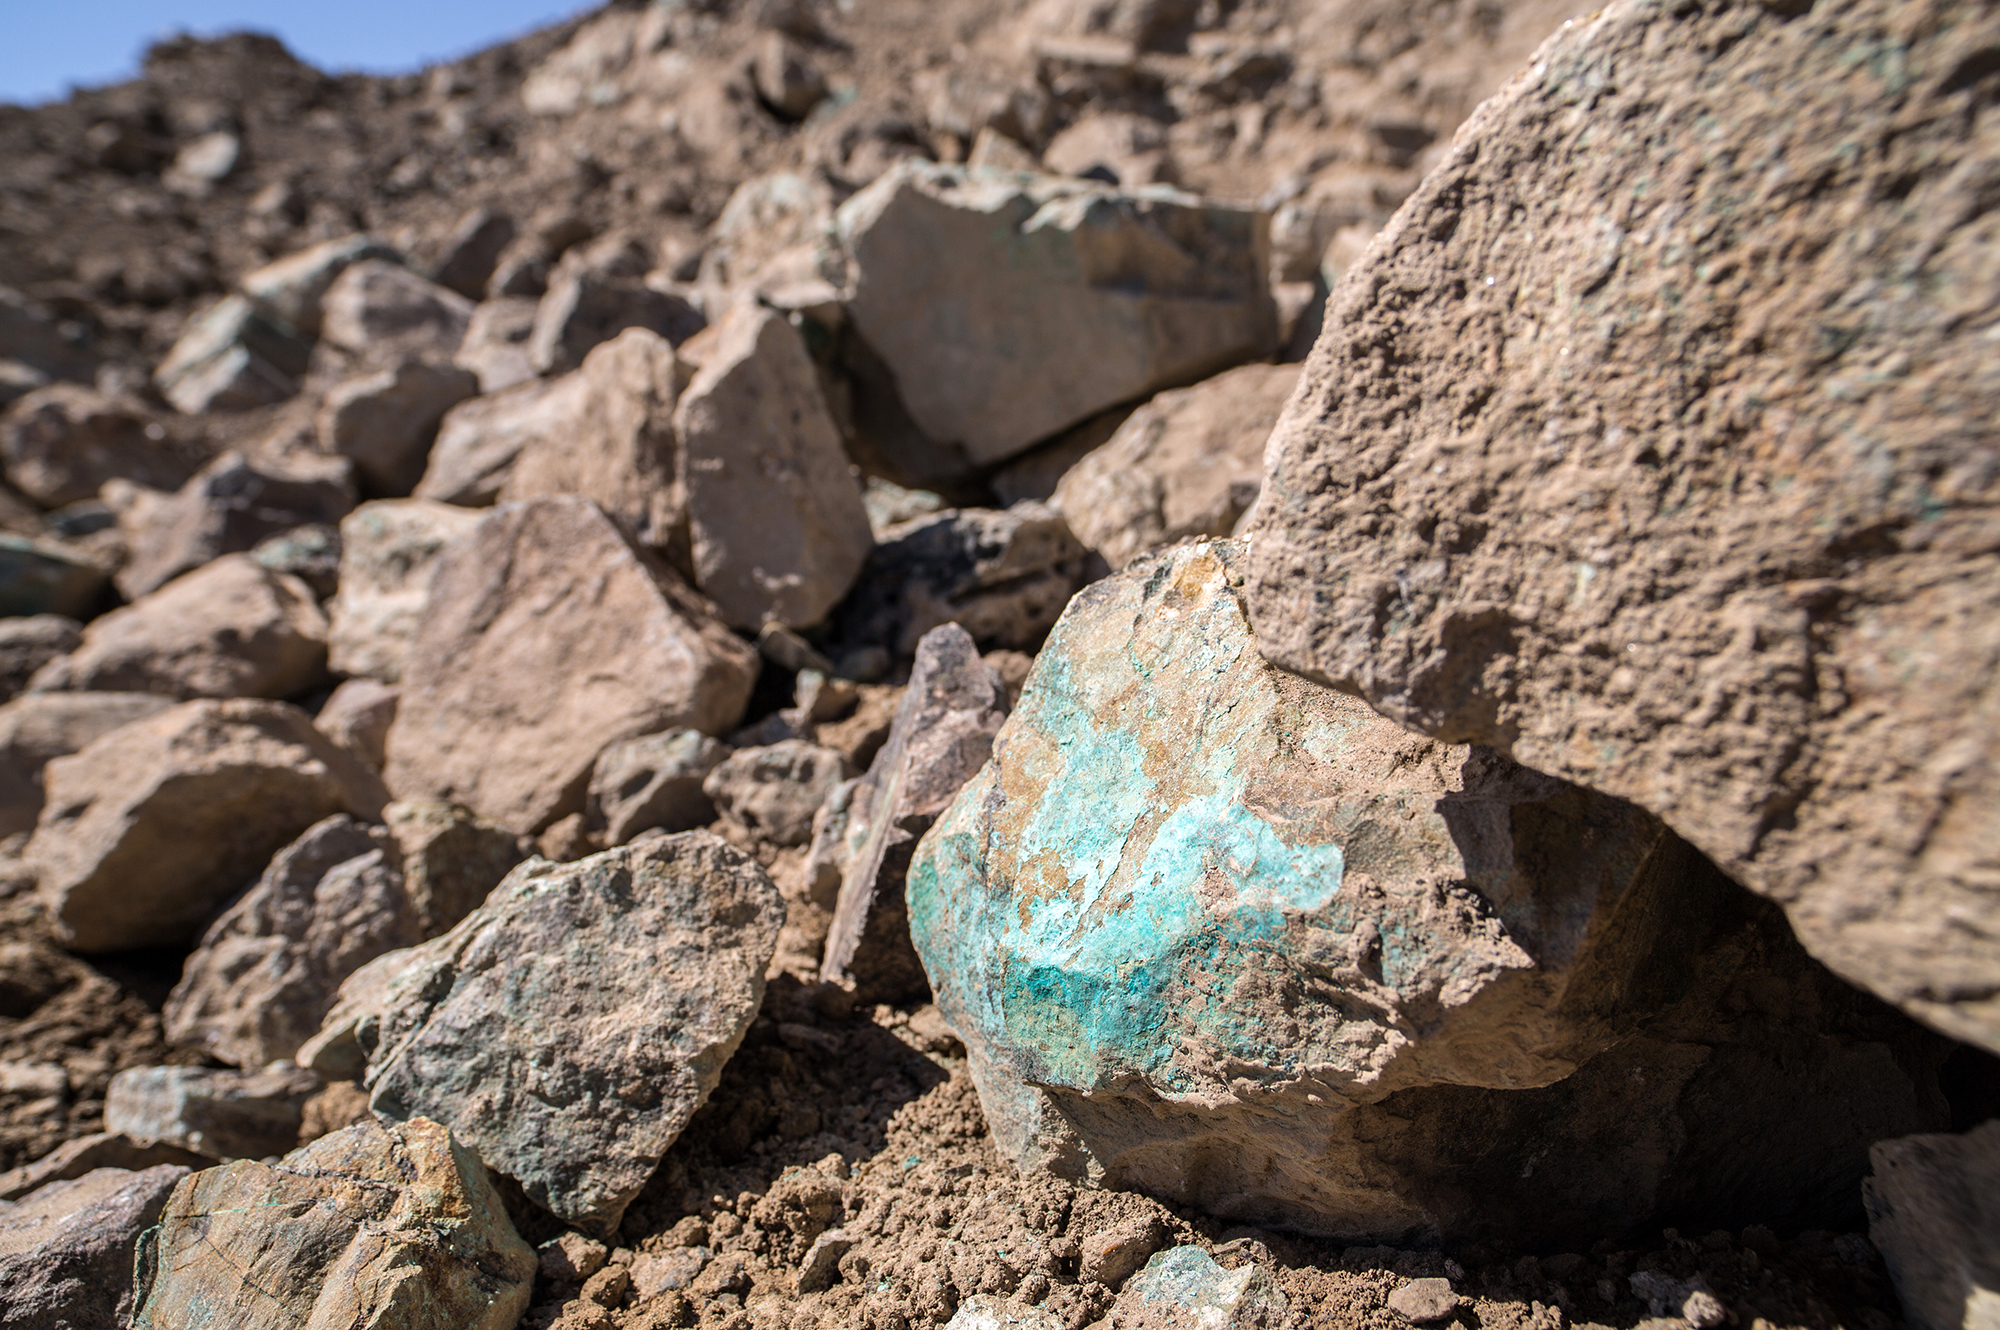 Copper ore is seen at Aynak, Logar Province, Afghanistan. The copper deposits are so rich that the bones of animals recovered by archaeologists on the site are green from metal leaching into them. A giant copper mine that the Afghan government has made the centerpiece of its plans for building an economy nearly from scratch is now at least five years behind schedule and the state-owned Chinese company that won the bidding has missed key deadlines in its still-secret contract with the Afghan gove